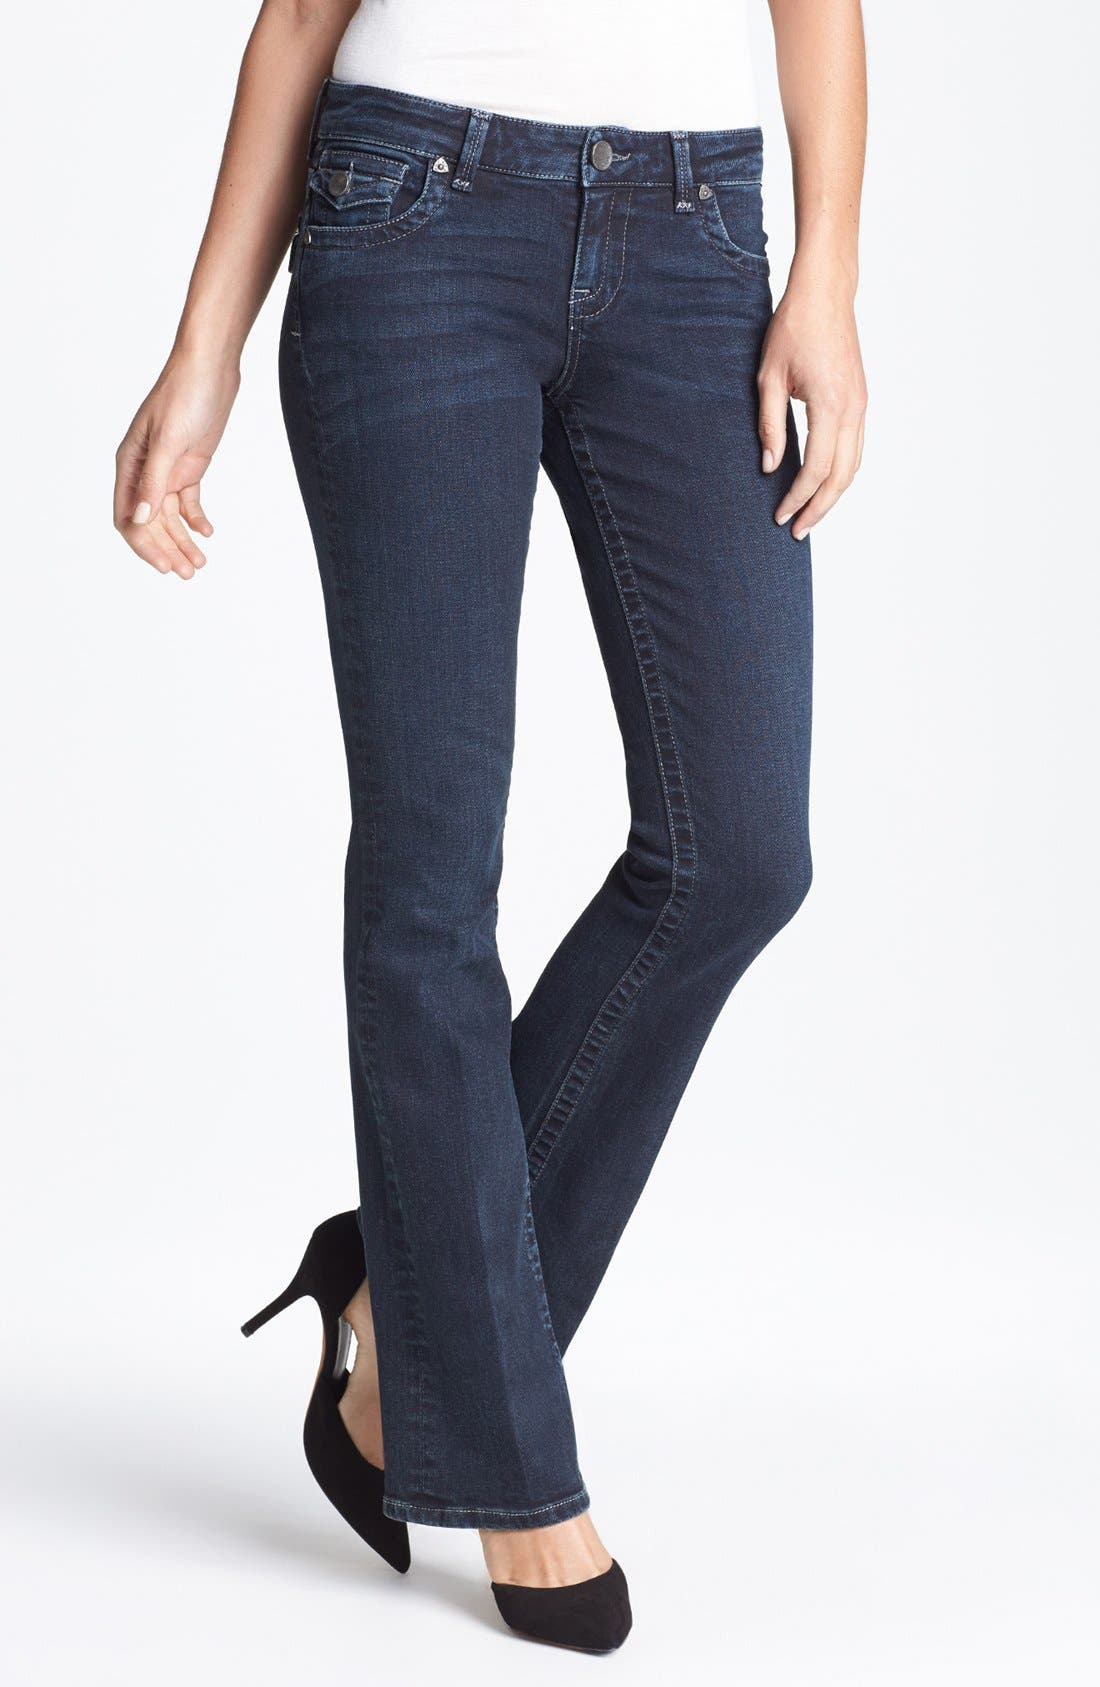 Main Image - KUT from the Kloth 'Natalie' Bootcut Jeans (Conquer)